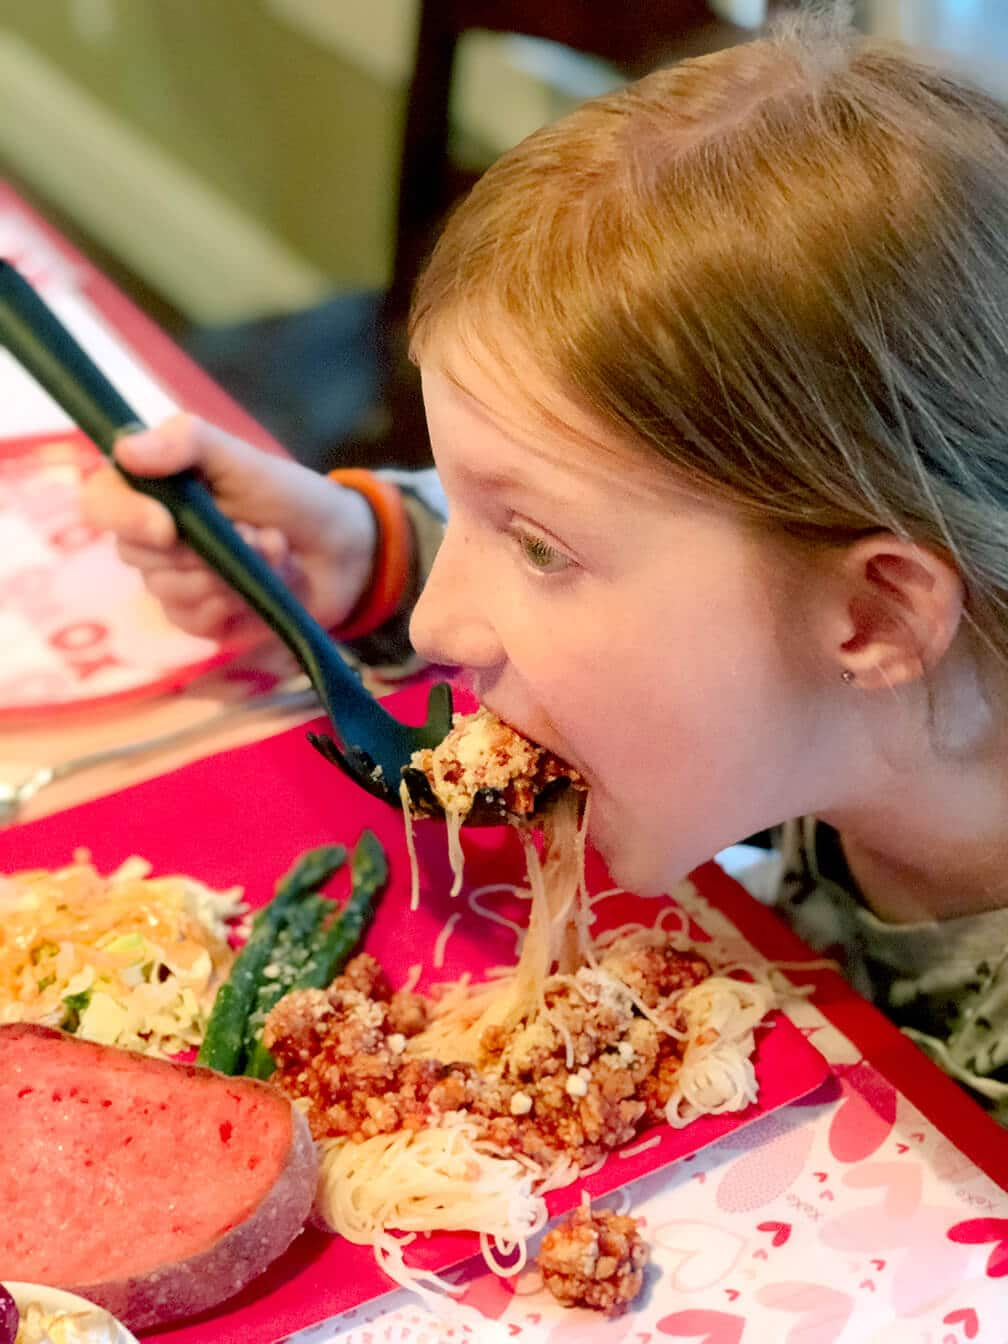 Girl eating spaghetti dinner with pasta spoon